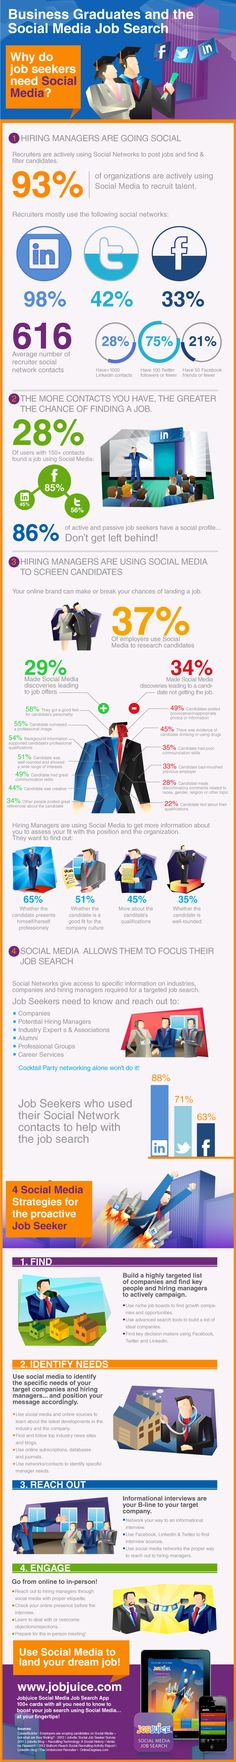 Why + How To Put Social Media To Work in Your Job Search [Infographic]